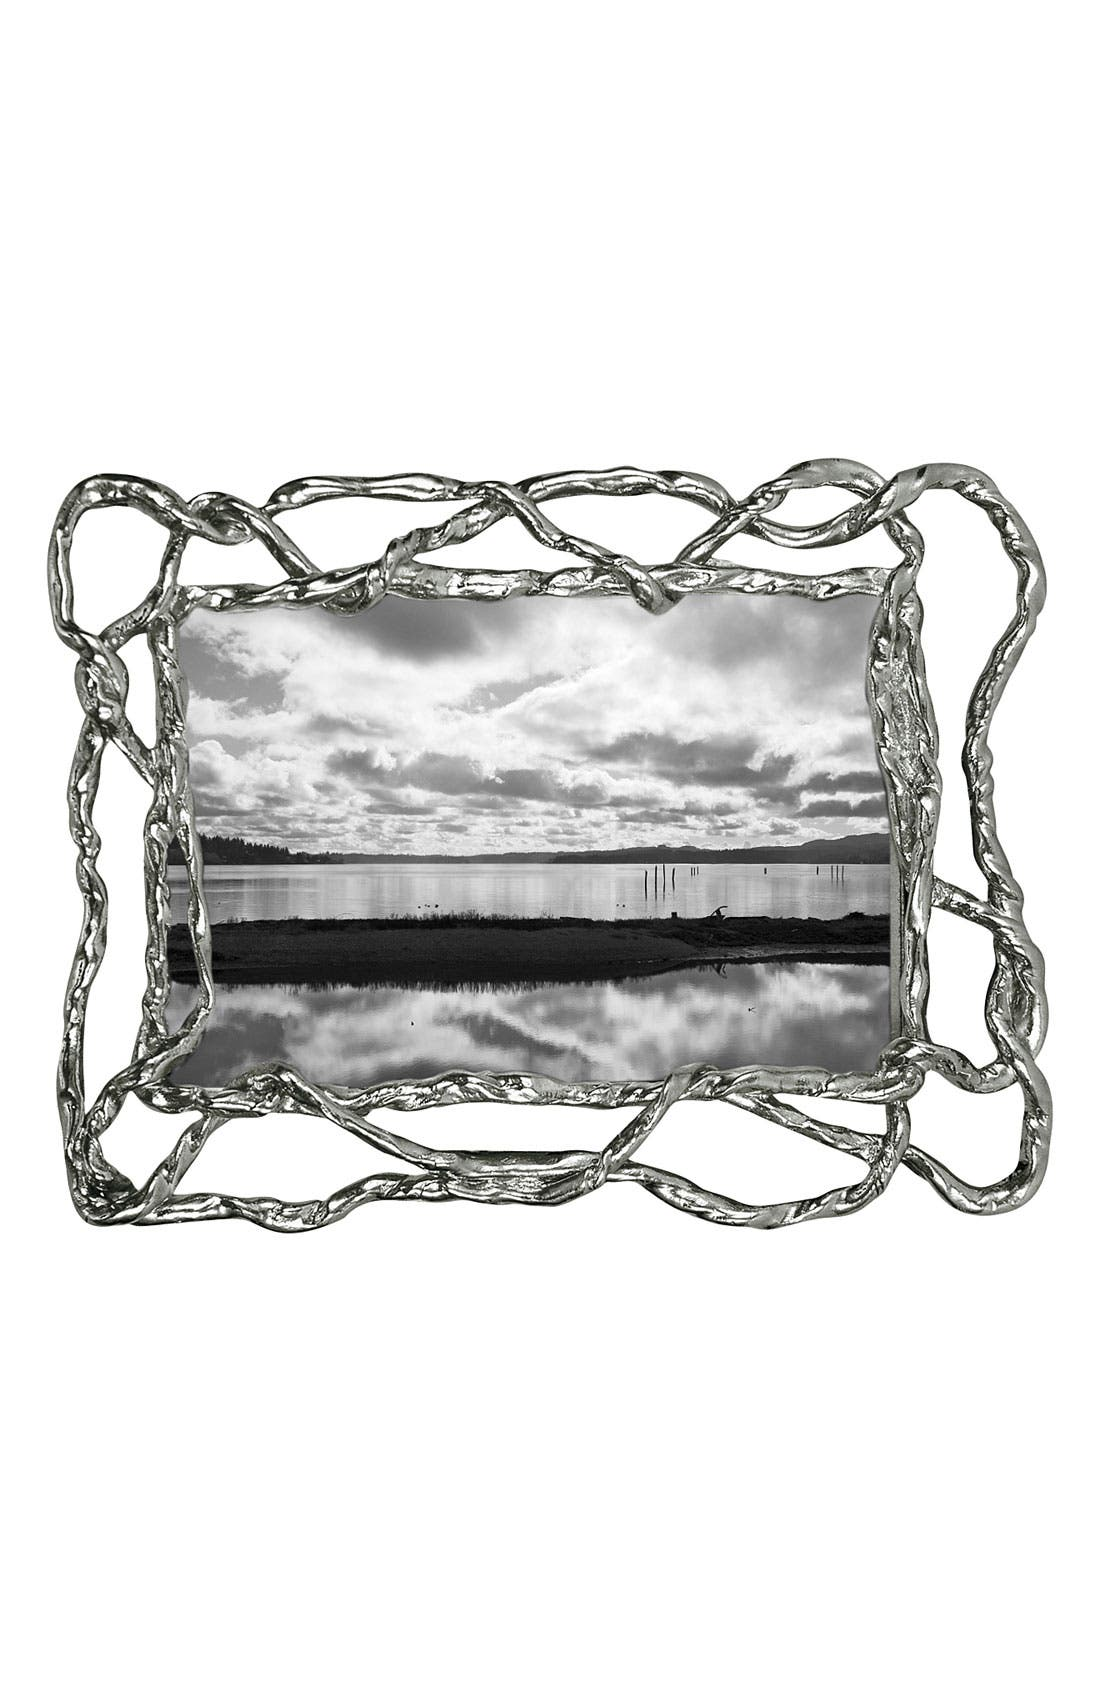 Main Image - Michael Aram 'Wisteria' Picture Frame (4x6)